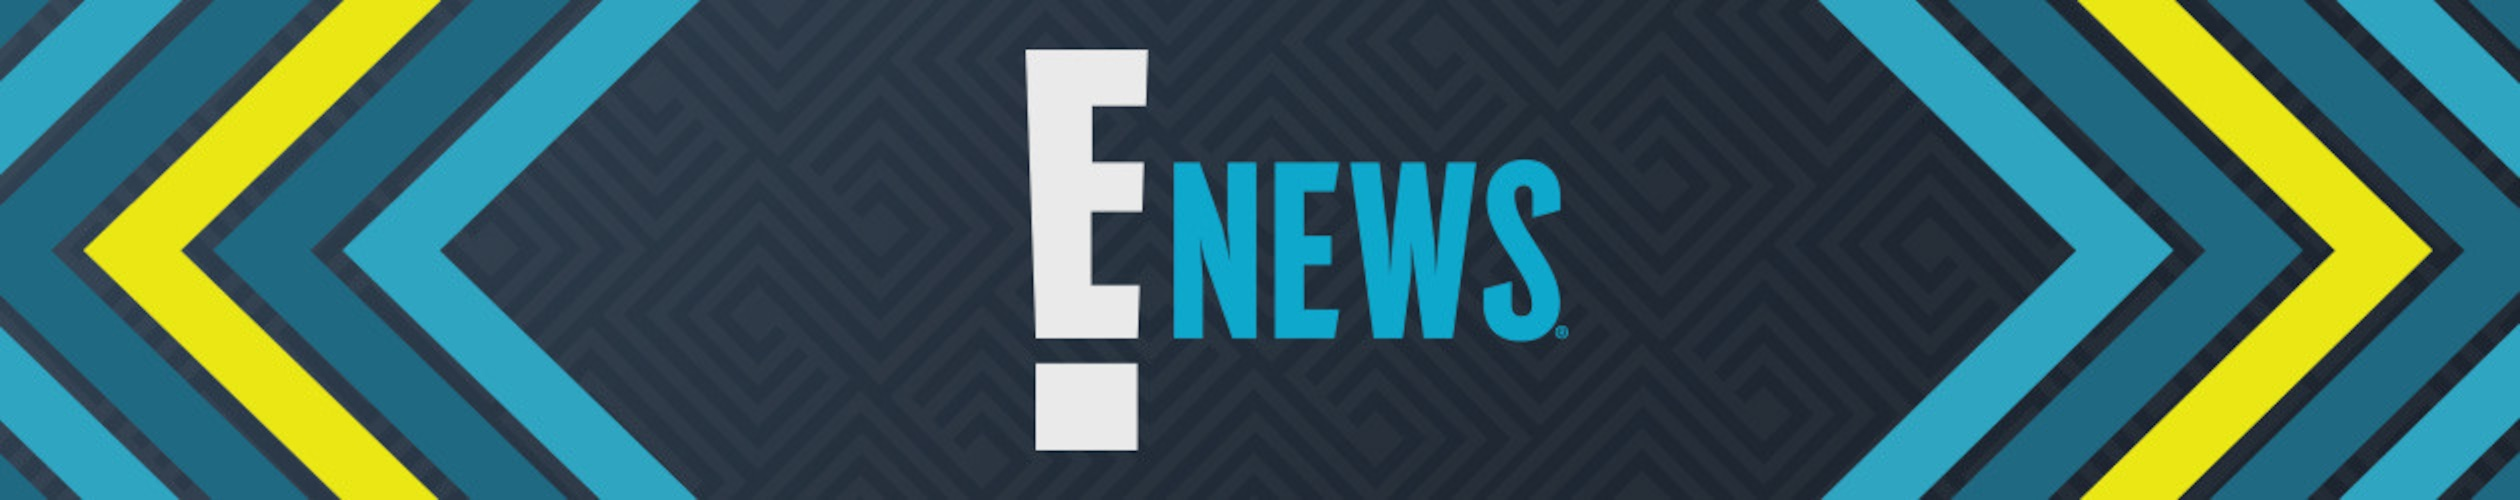 E! News Tune-In Banner